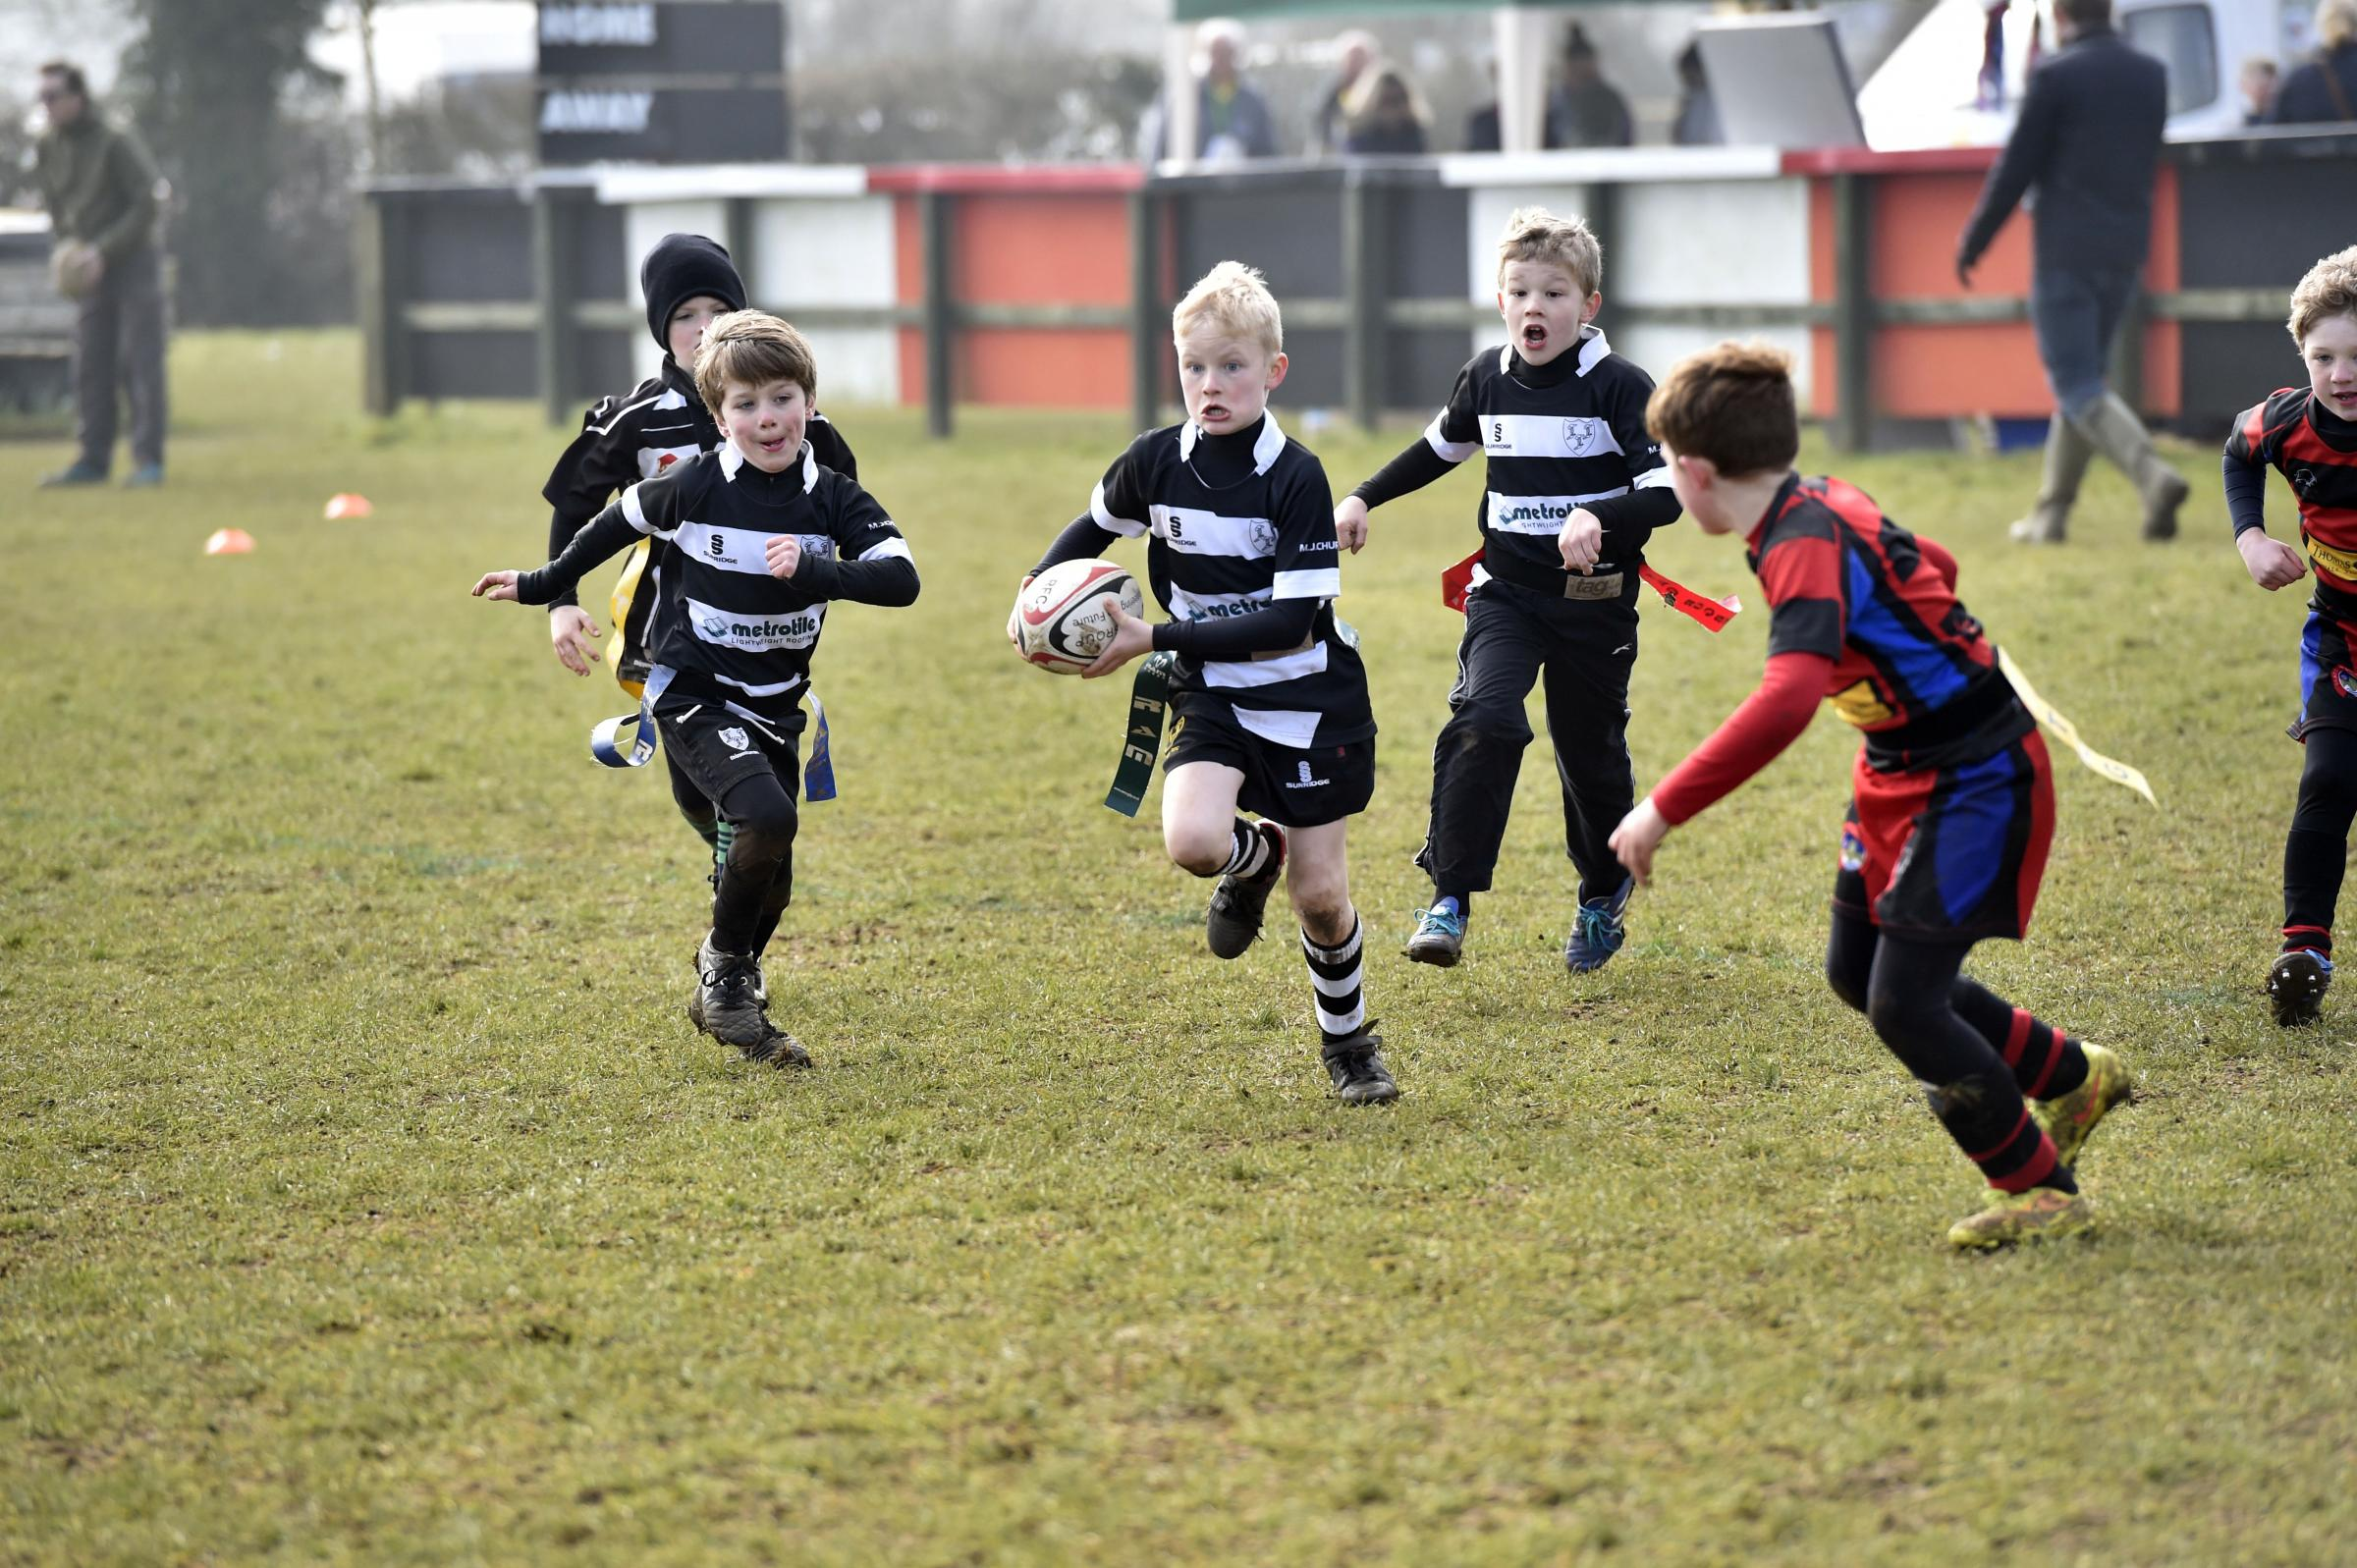 Chippenham U12s (black & white) take on Bridgend Ath Allstars